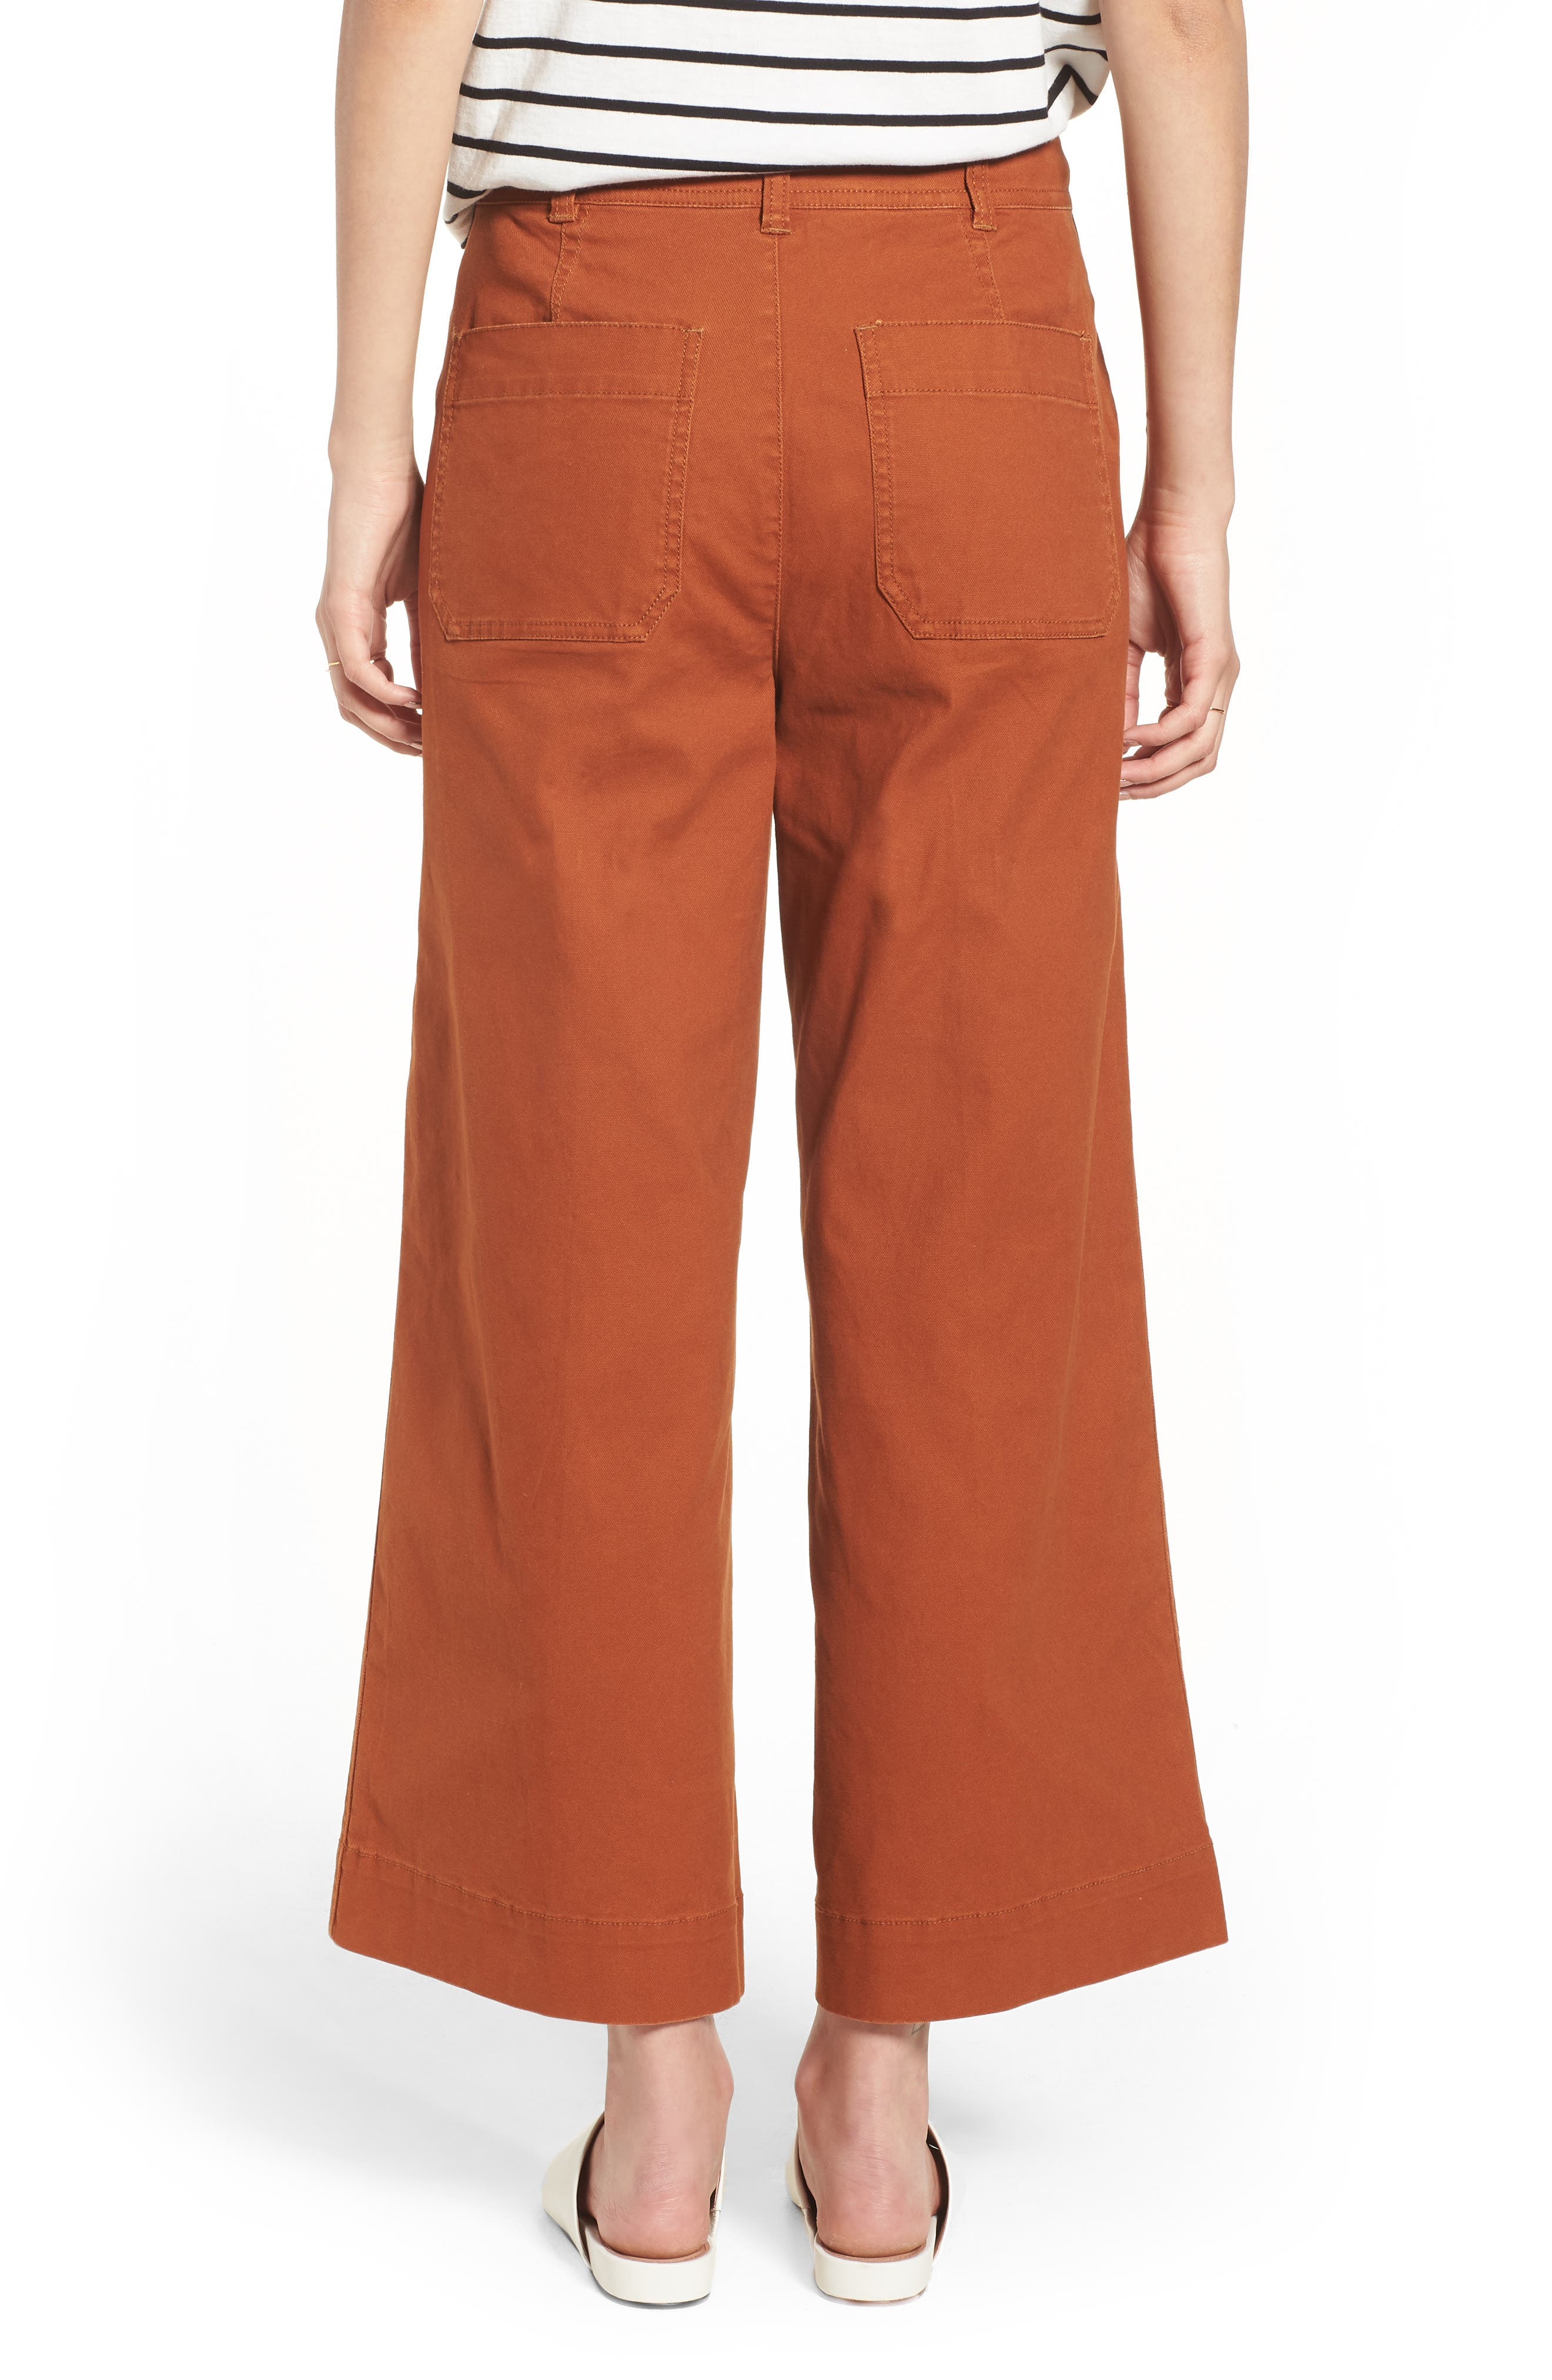 Emmett Crop Wide Leg Pants,                             Alternate thumbnail 6, color,